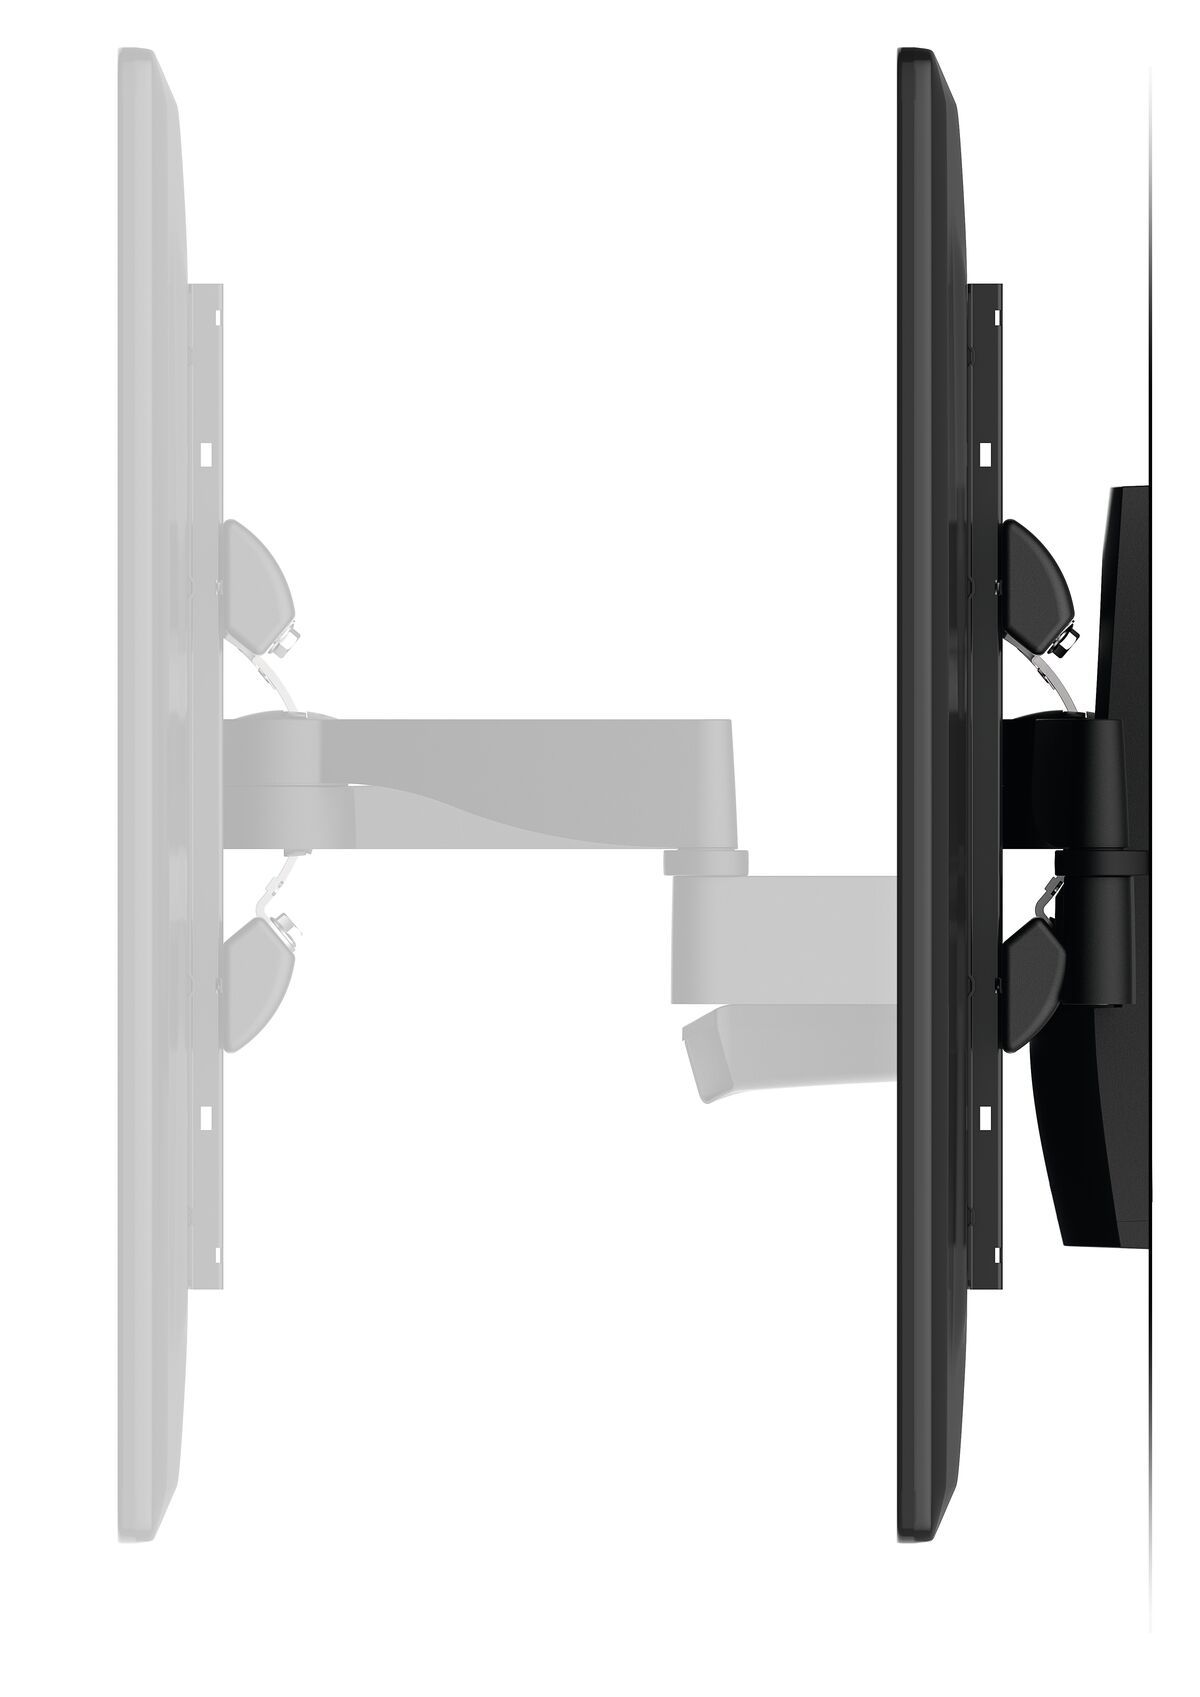 Vogel's WALL 2250 Full-Motion TV Wall Mount - Suitable for 32 up to 55 inch TVs - Forward and turning motion (up to 120°) - Tilt up to 15° - Side view